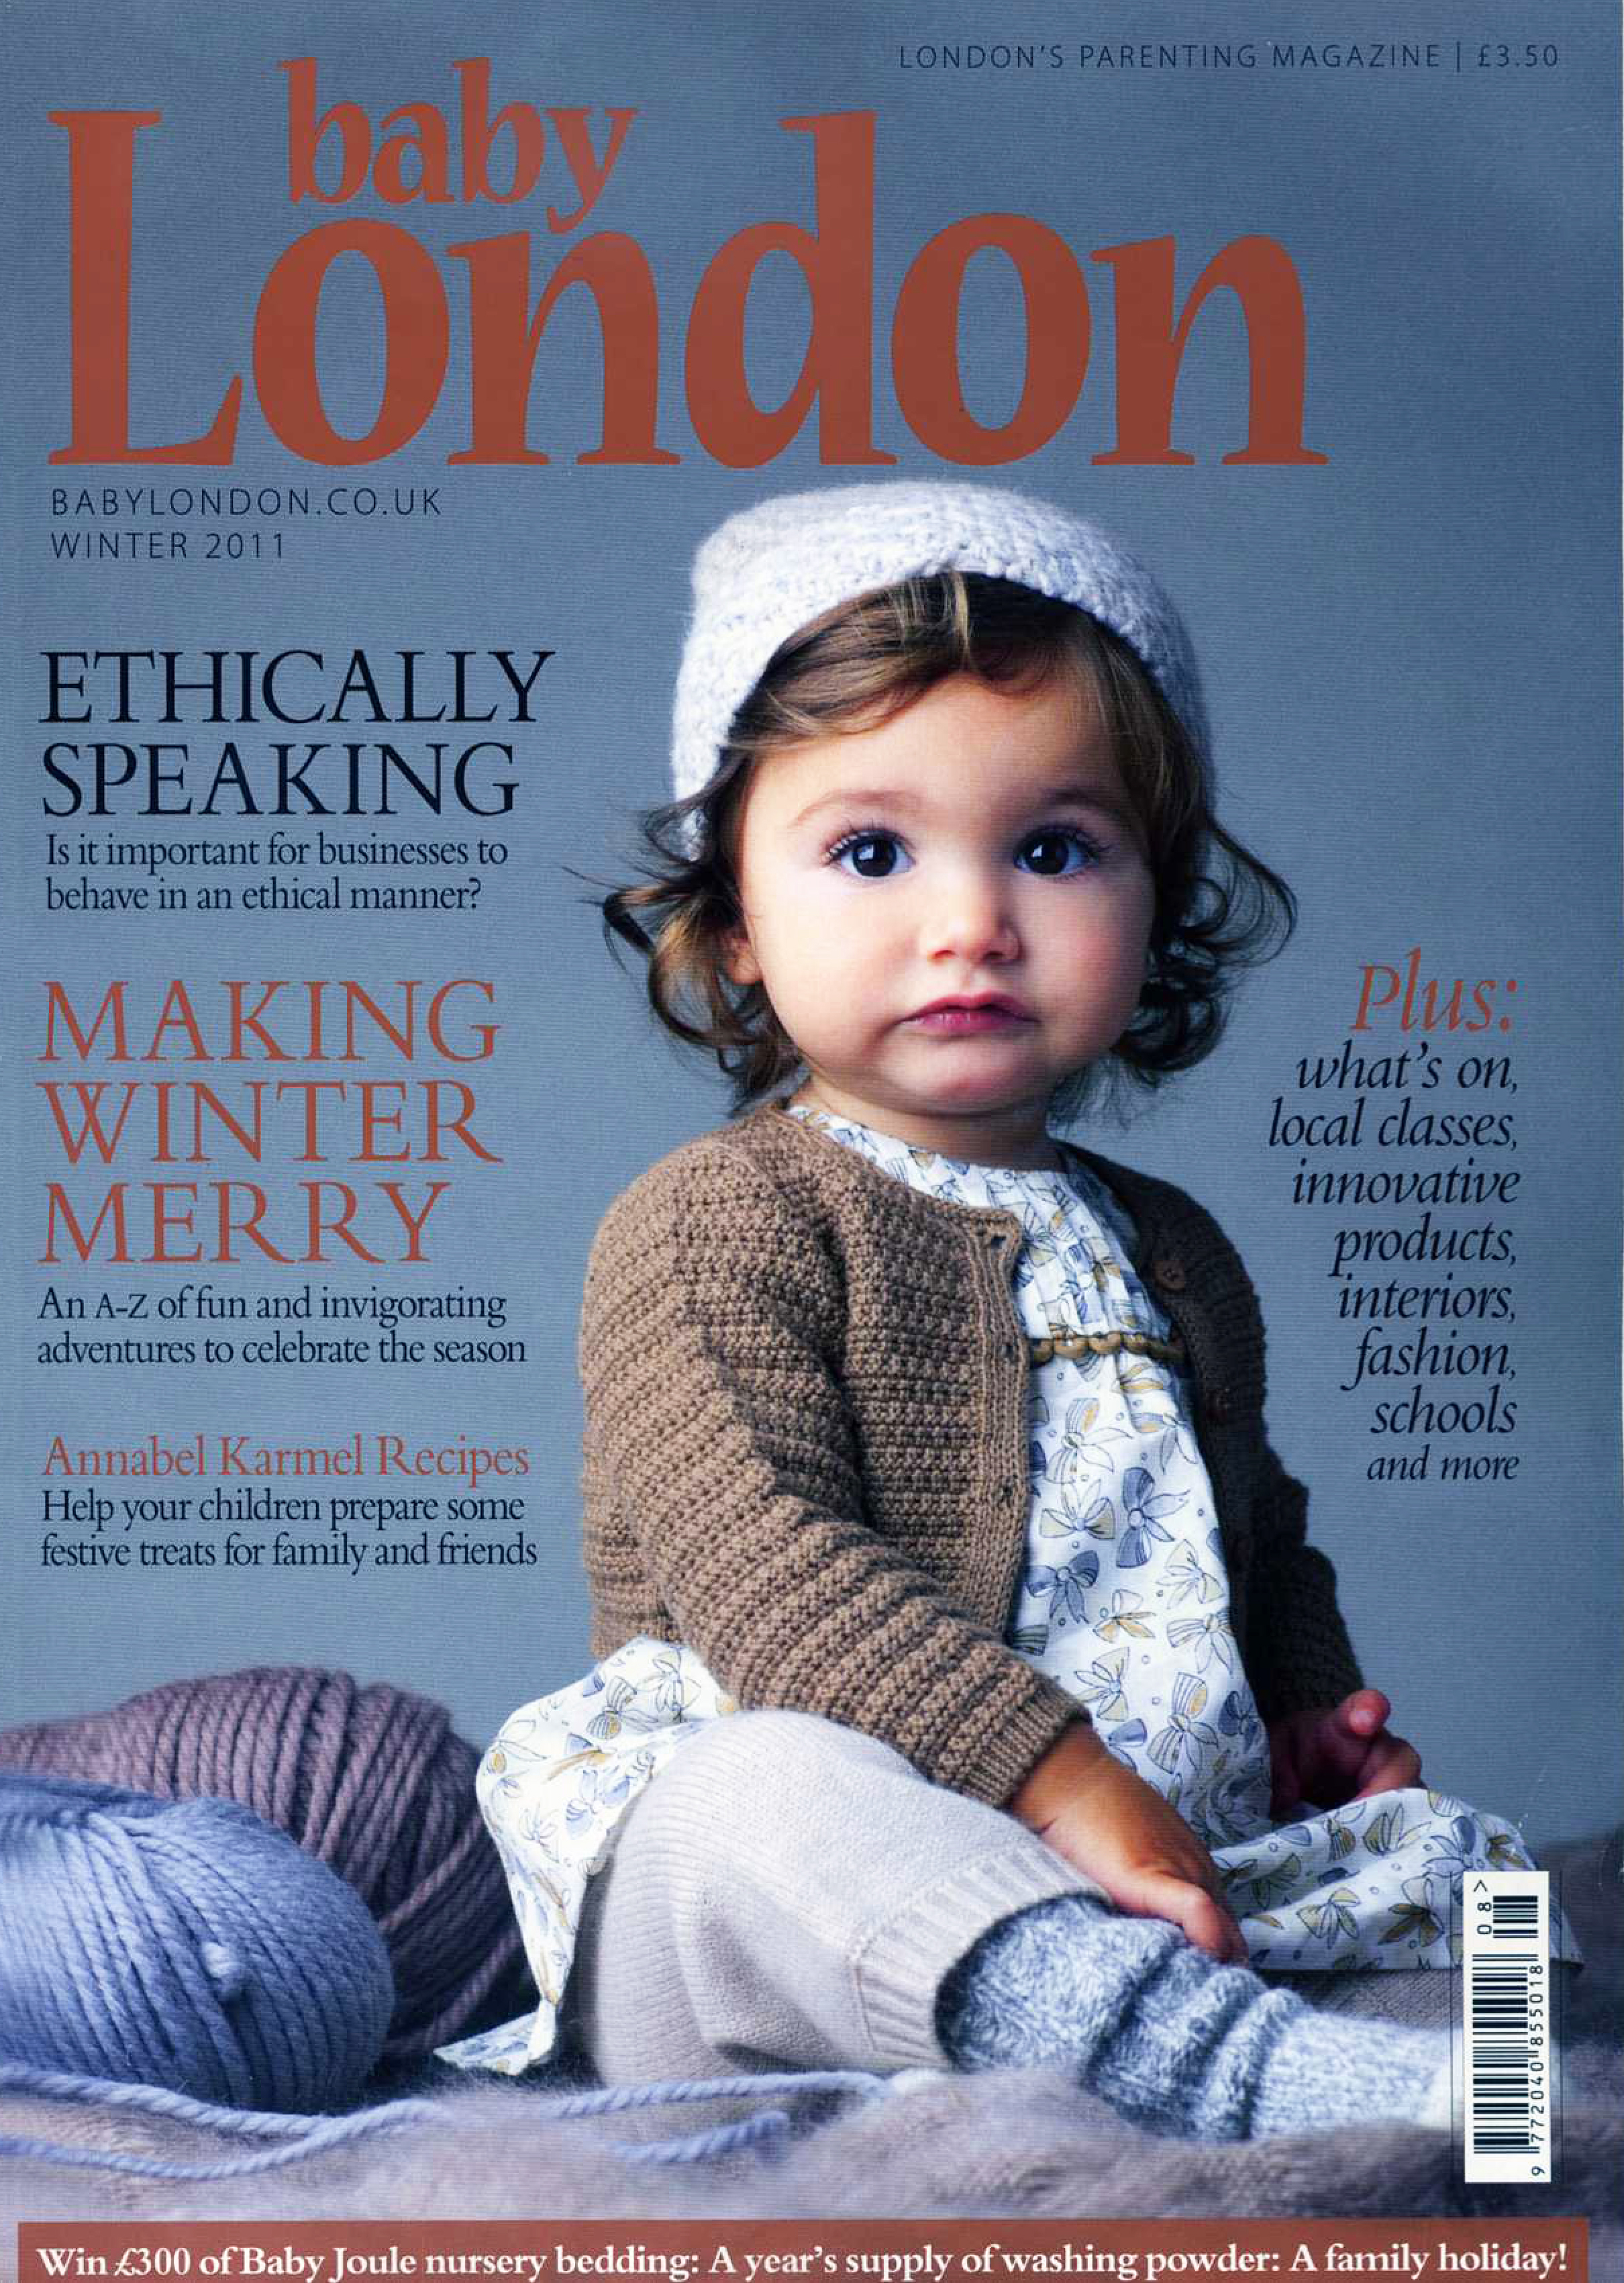 Baby London Magazine. Lucas was also spotted on the front cover of the